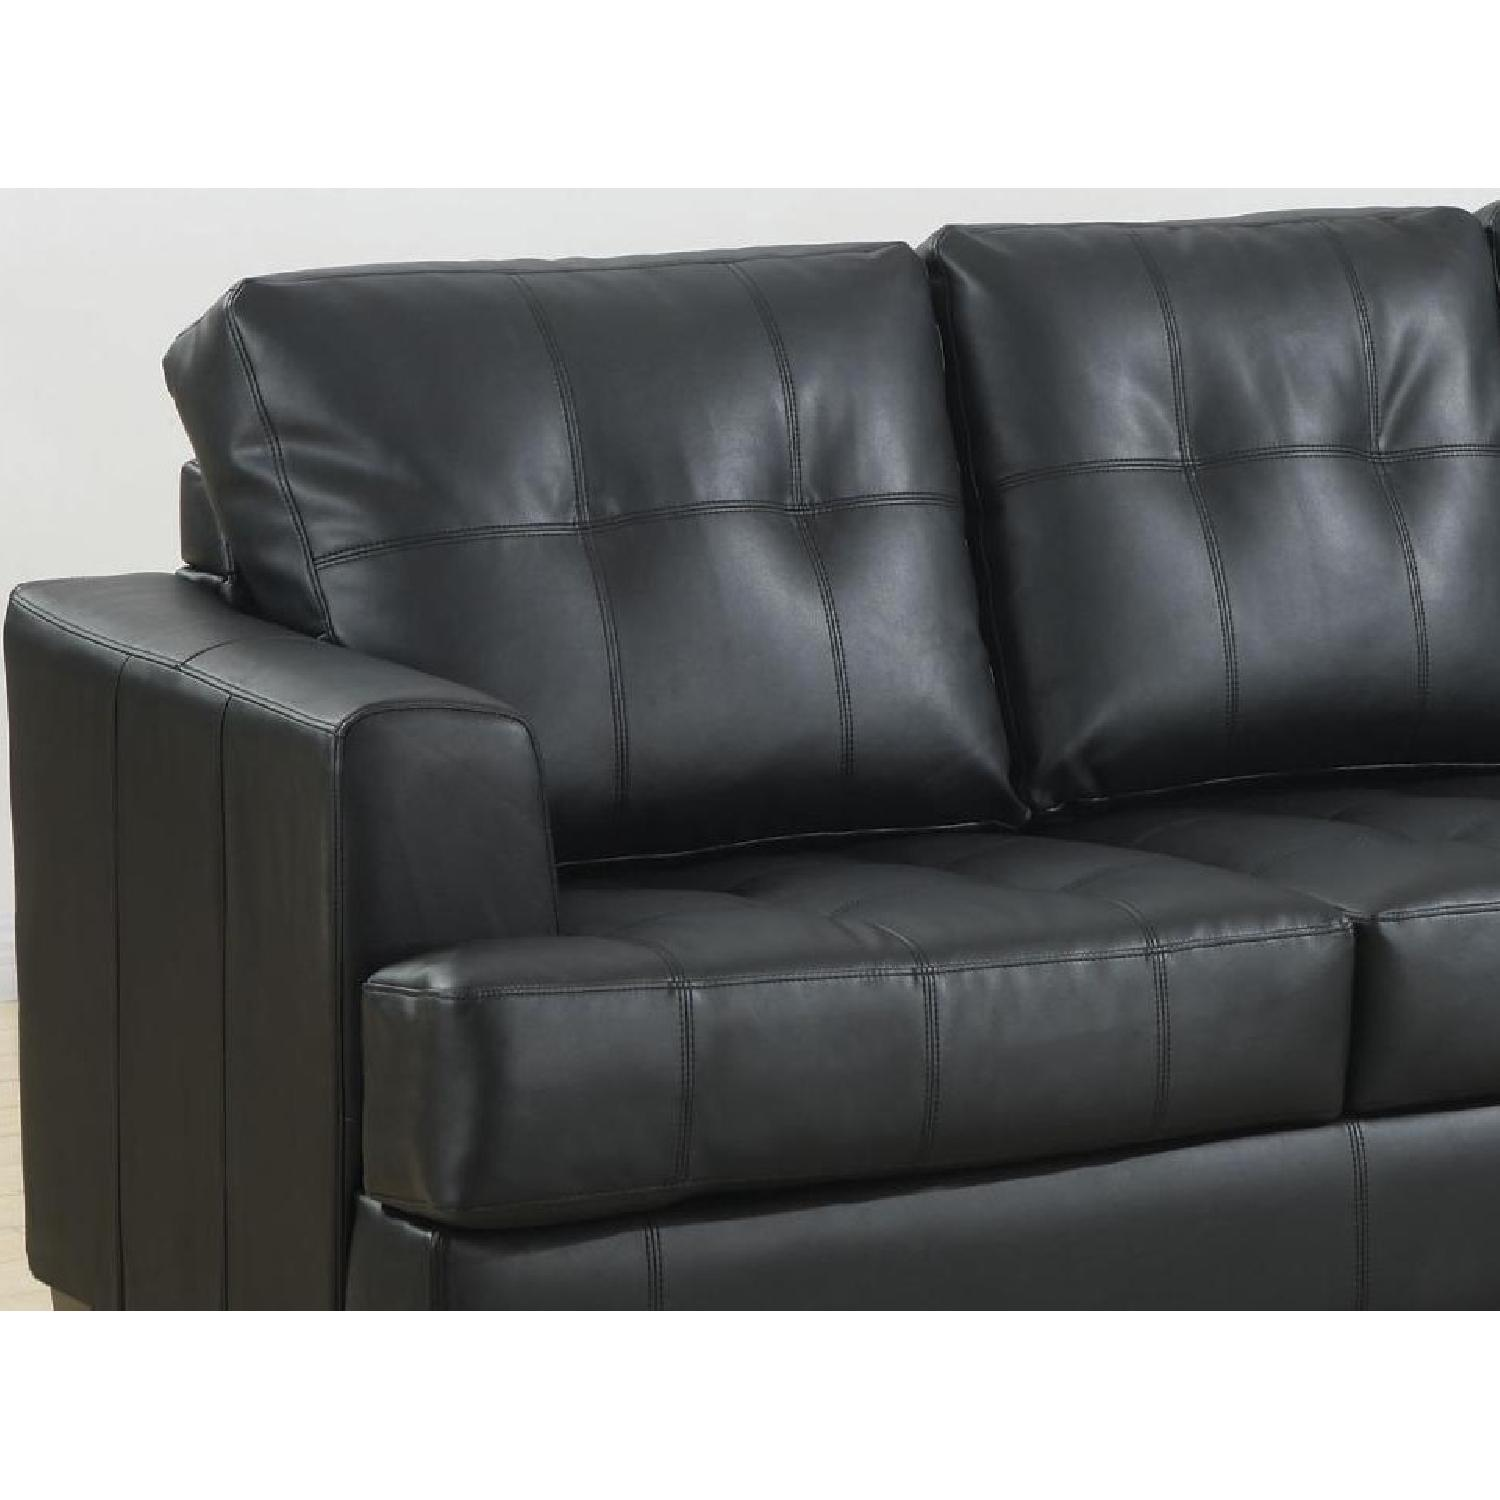 Black Bonded Leather Sofa W/ Tufted Seat U0026 Back